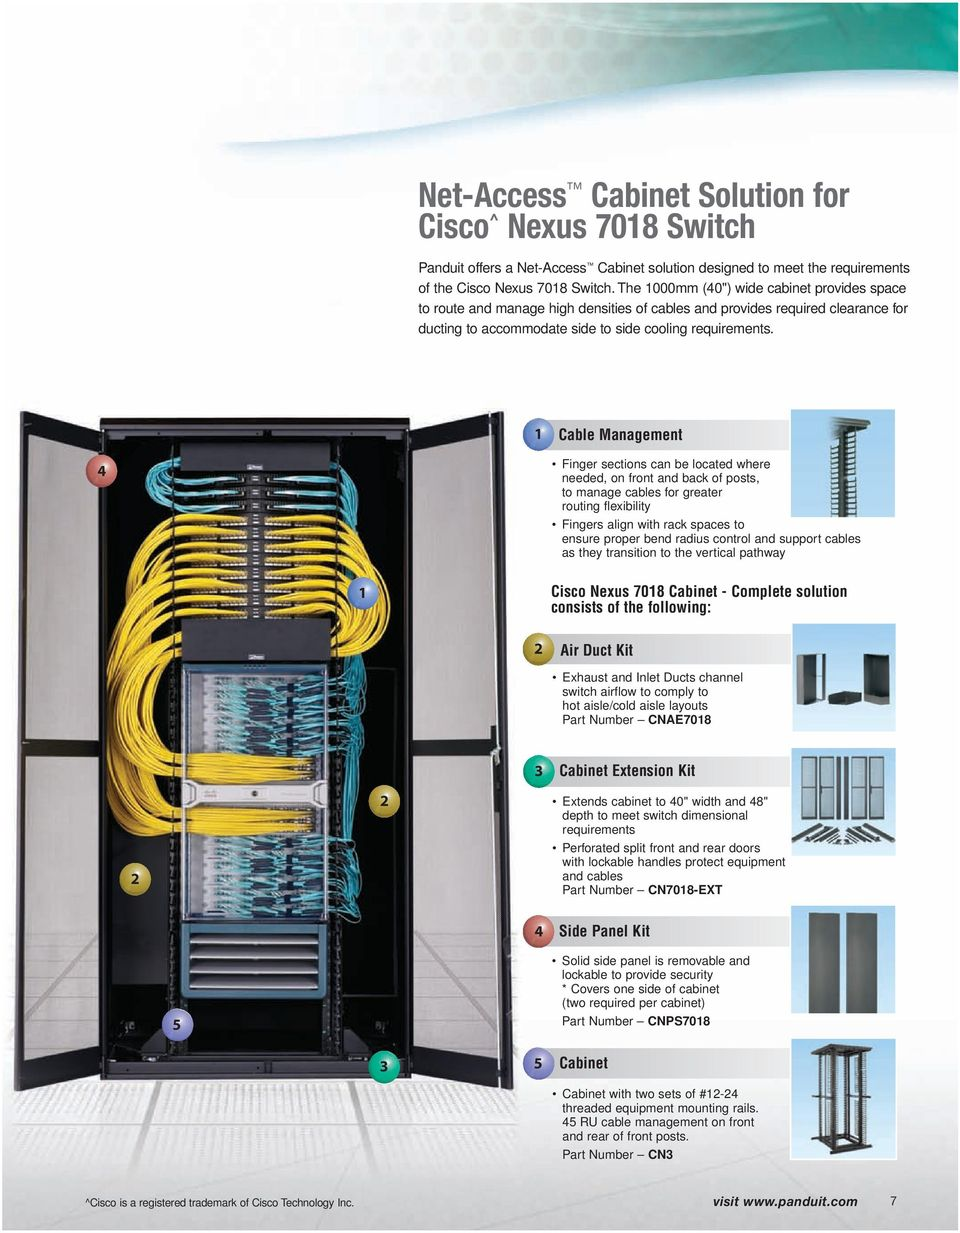 Cable Management 4 Finger sections can be located where needed, on front and back of posts, to manage cables for greater routing flexibility Fingers align with rack spaces to ensure proper bend